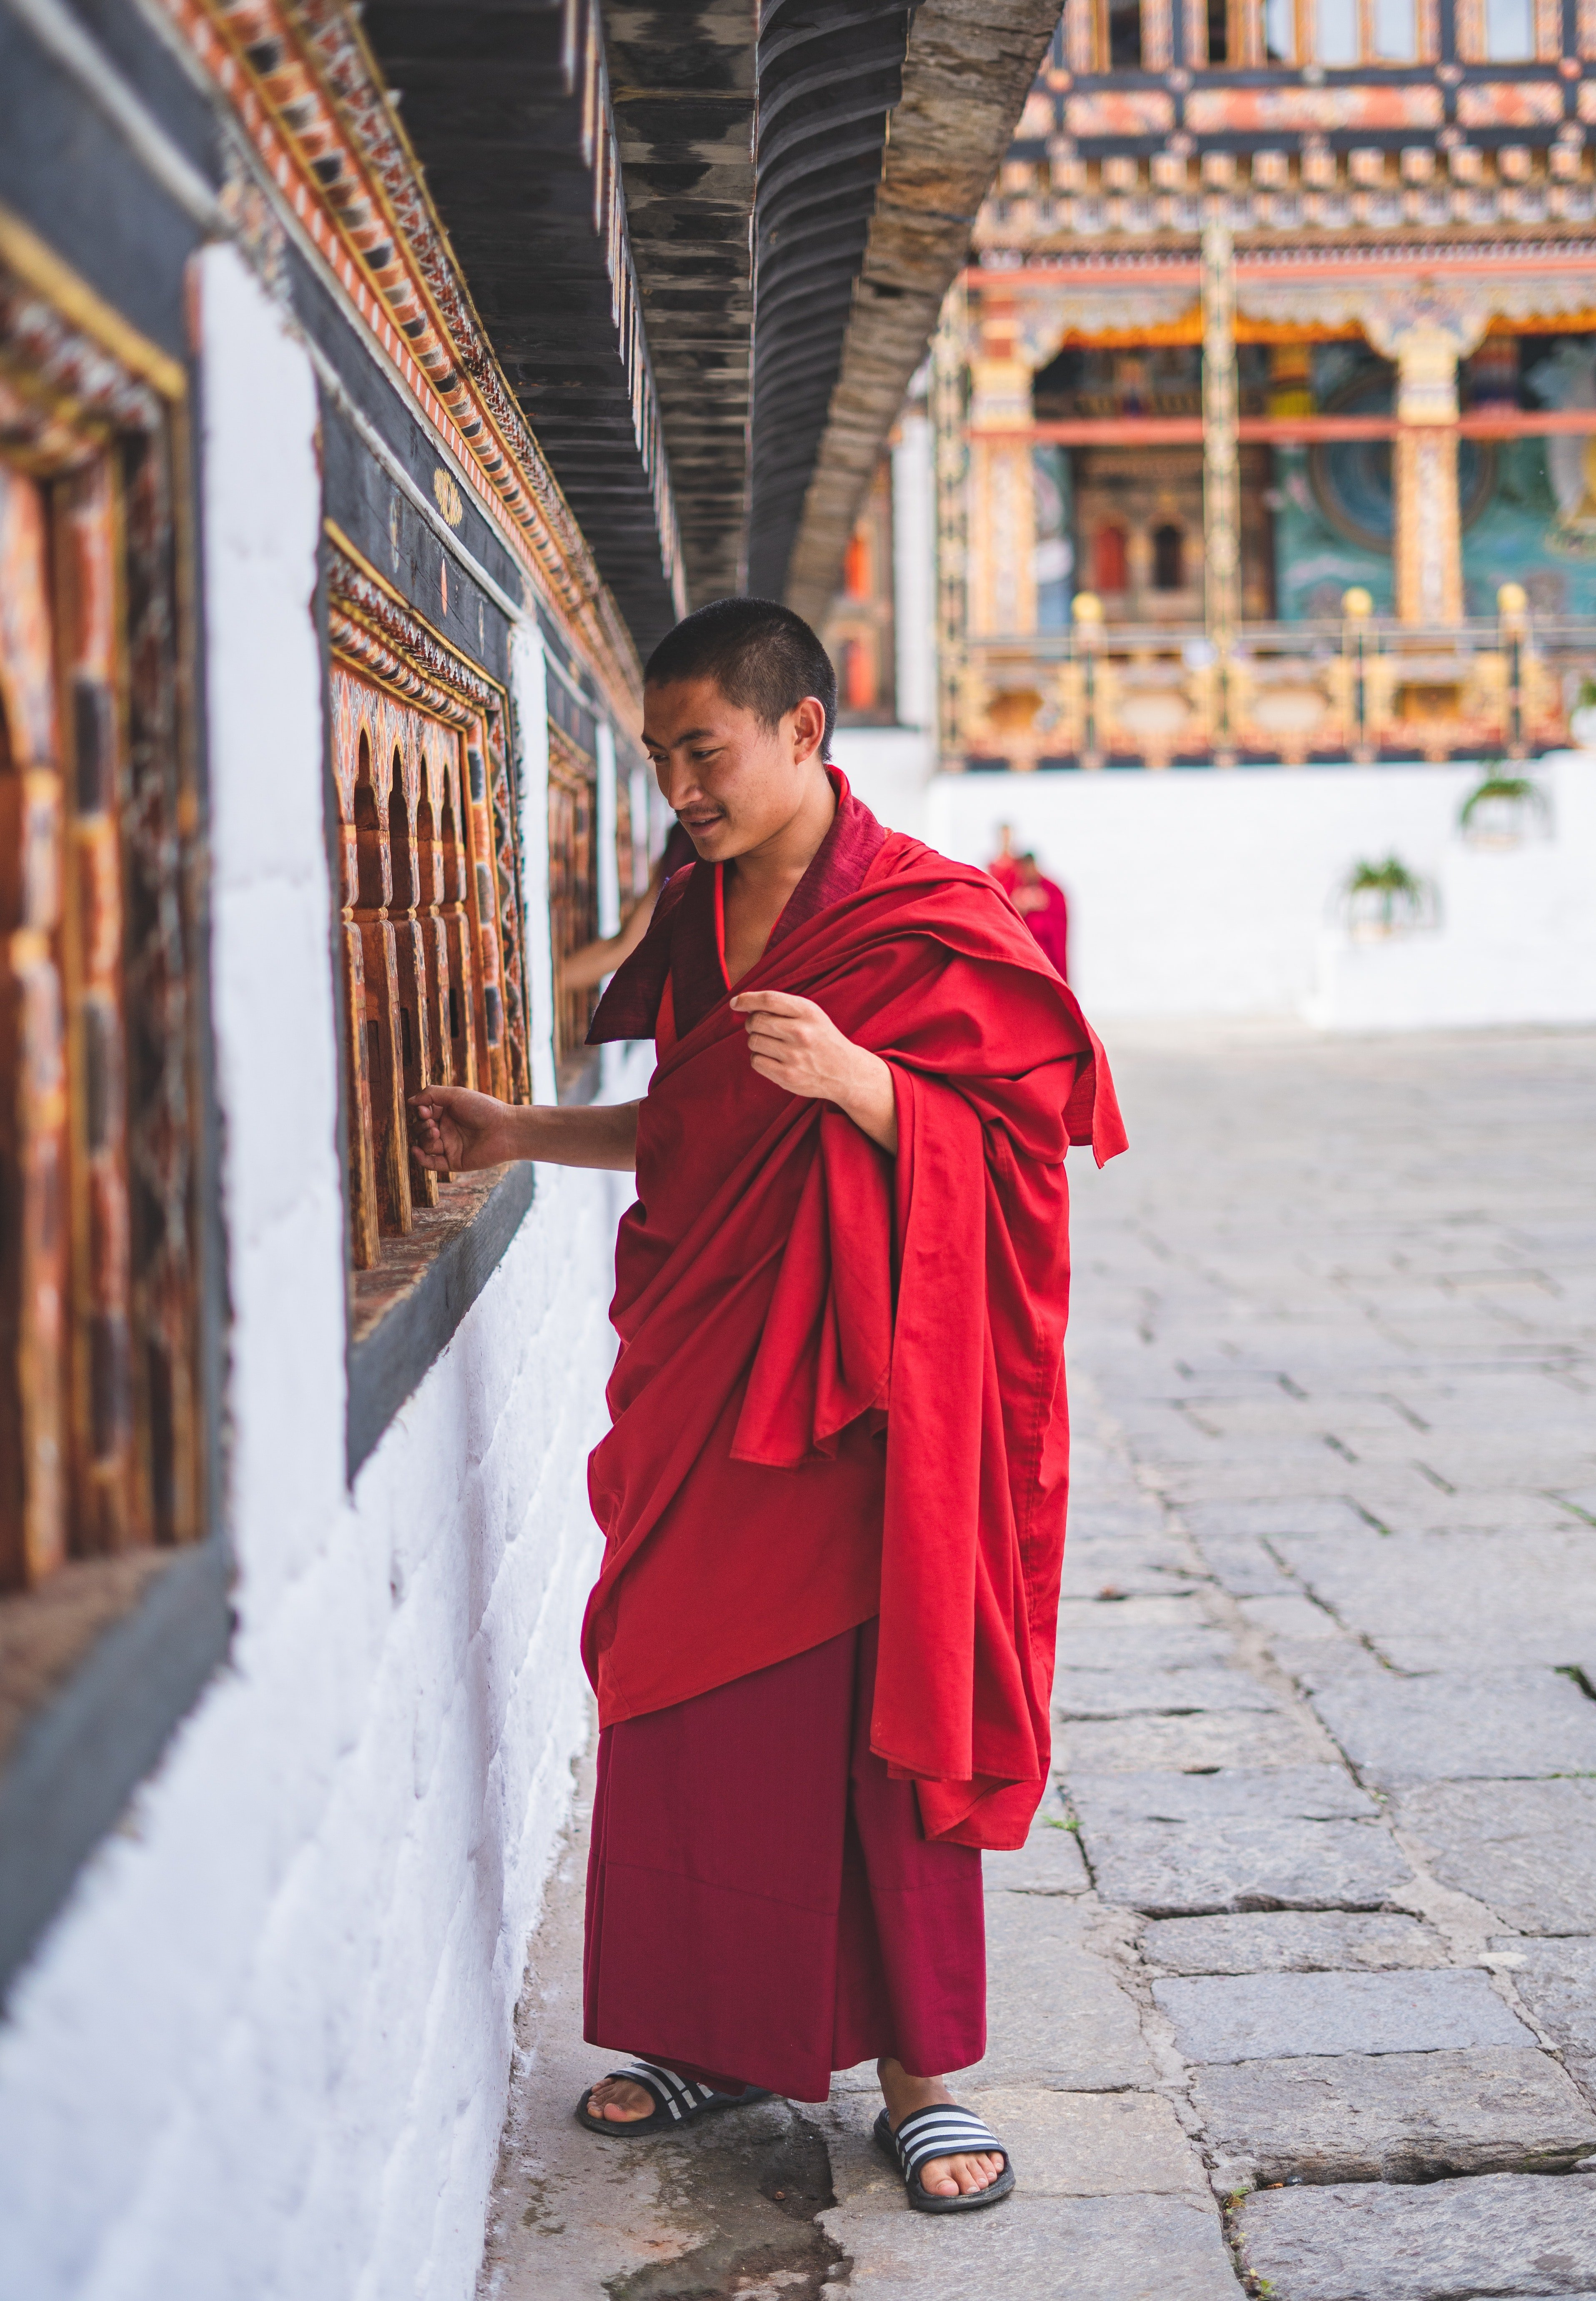 The boy was greeted by the head monk who refused to tell him anything. | Photo: Pexels